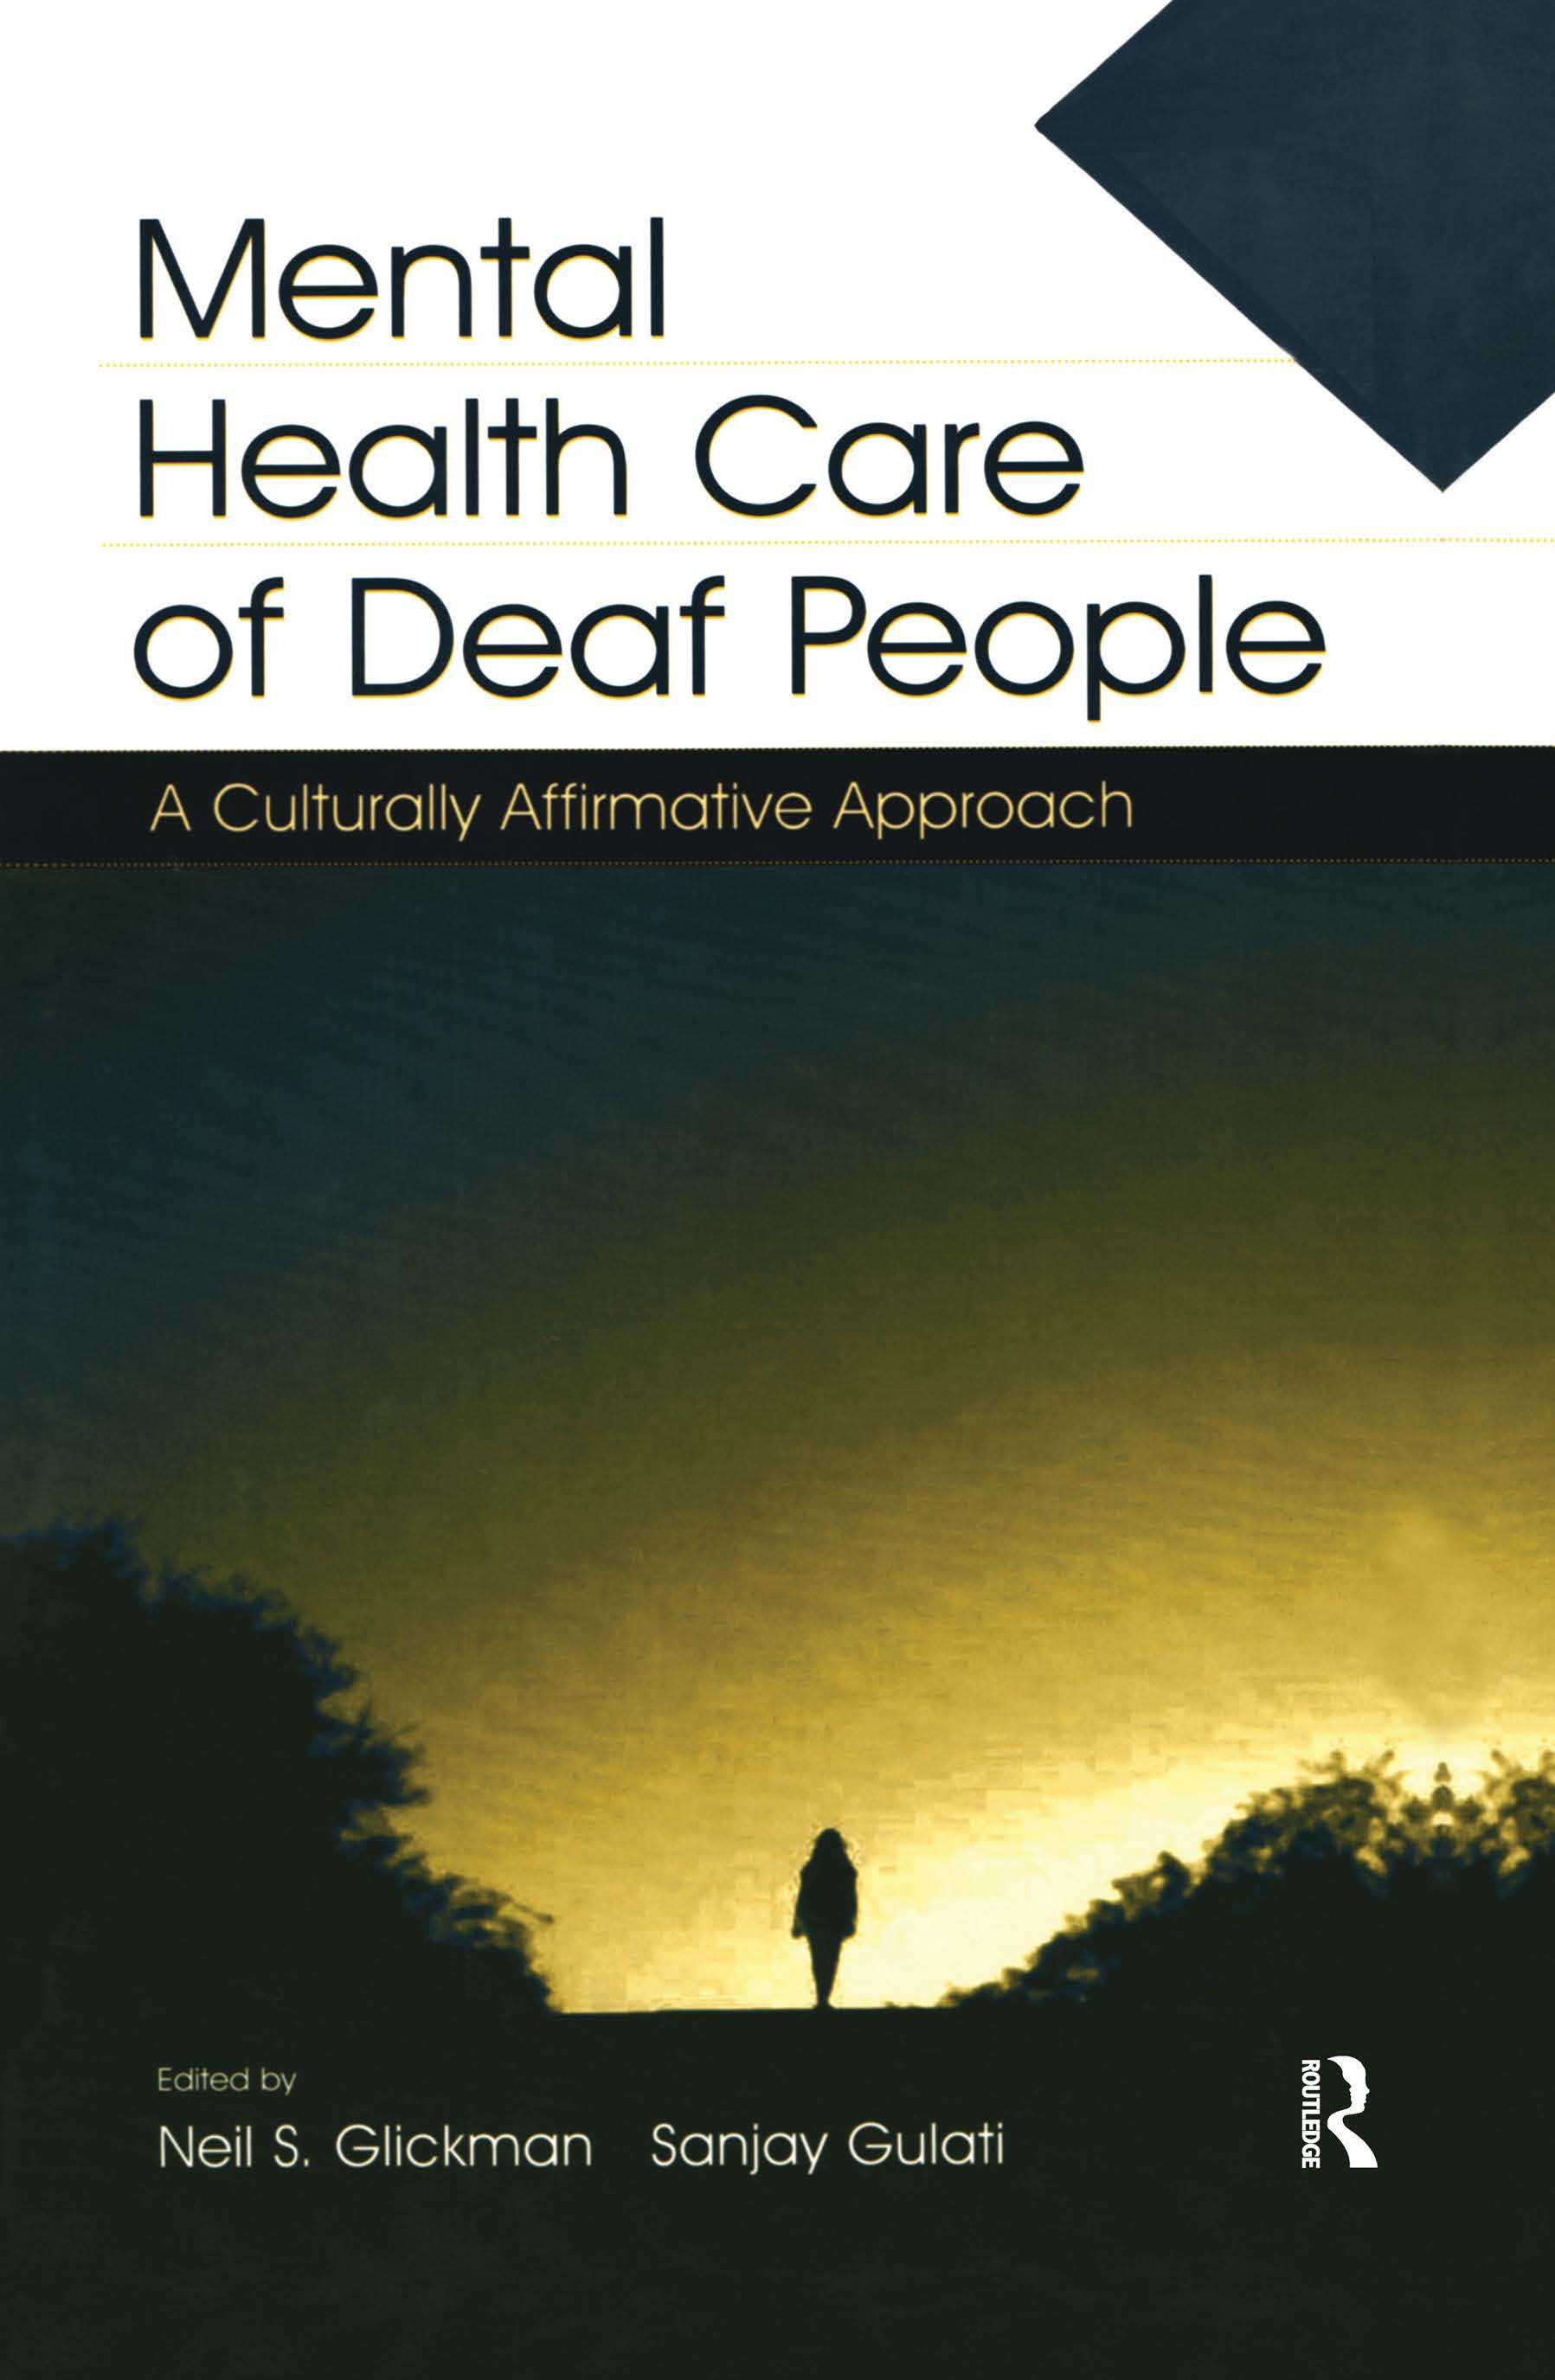 Mental Health Care of Deaf People